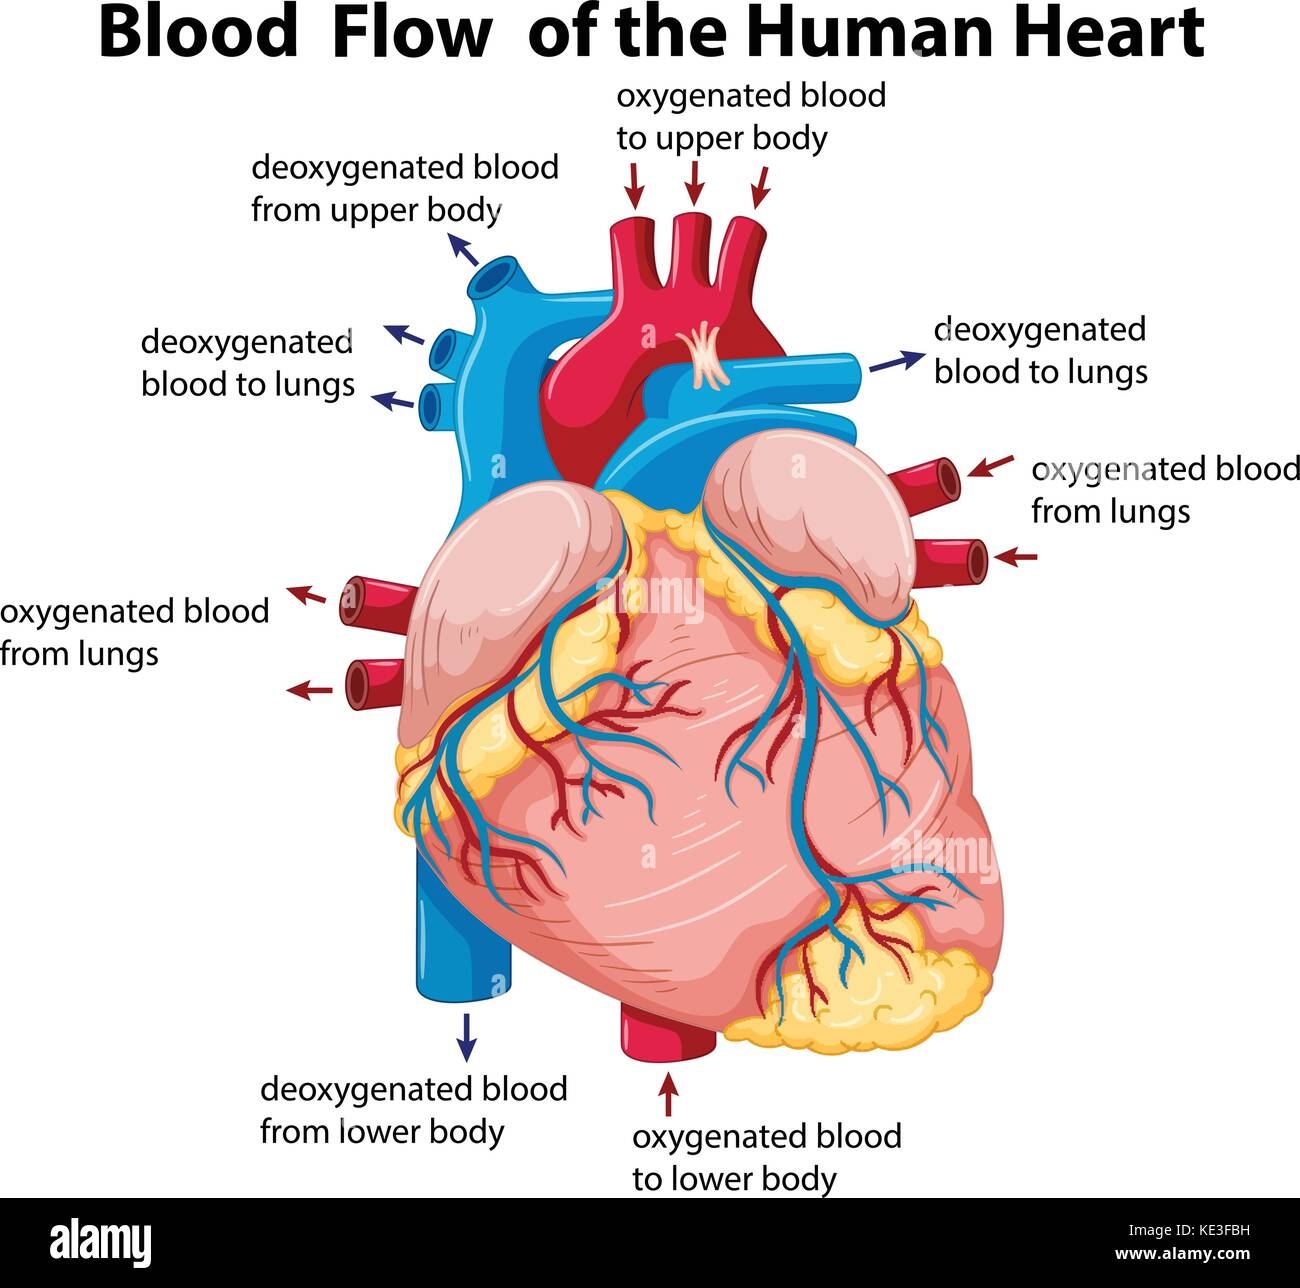 hight resolution of diagram showing blood flow in human heart illustration